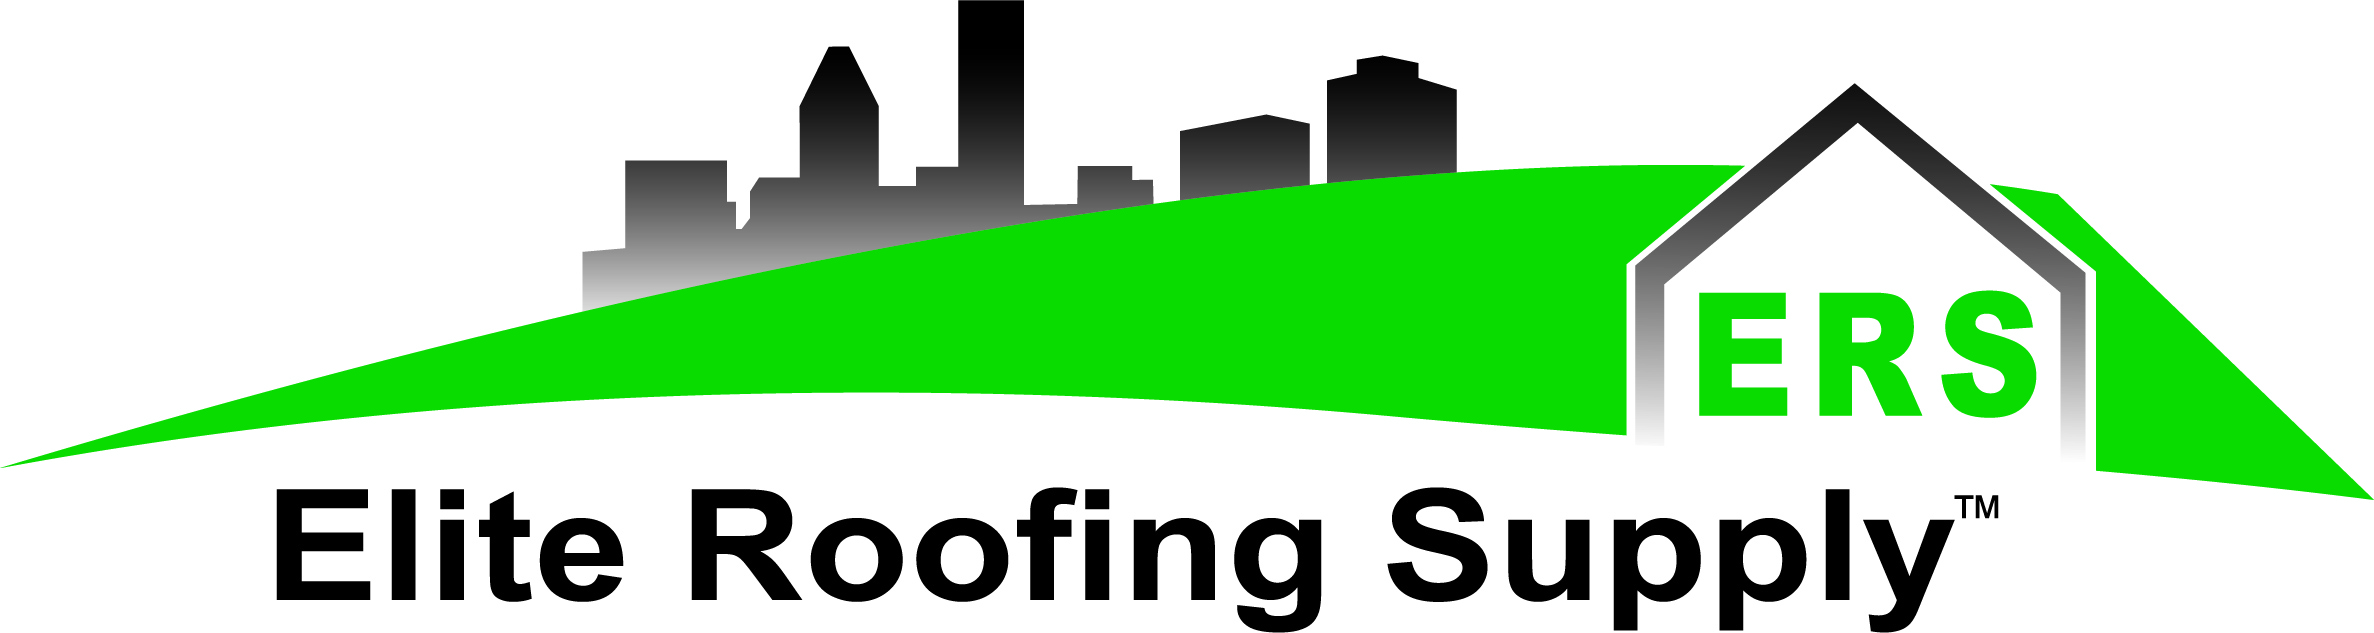 Elite Roofing Supply logo